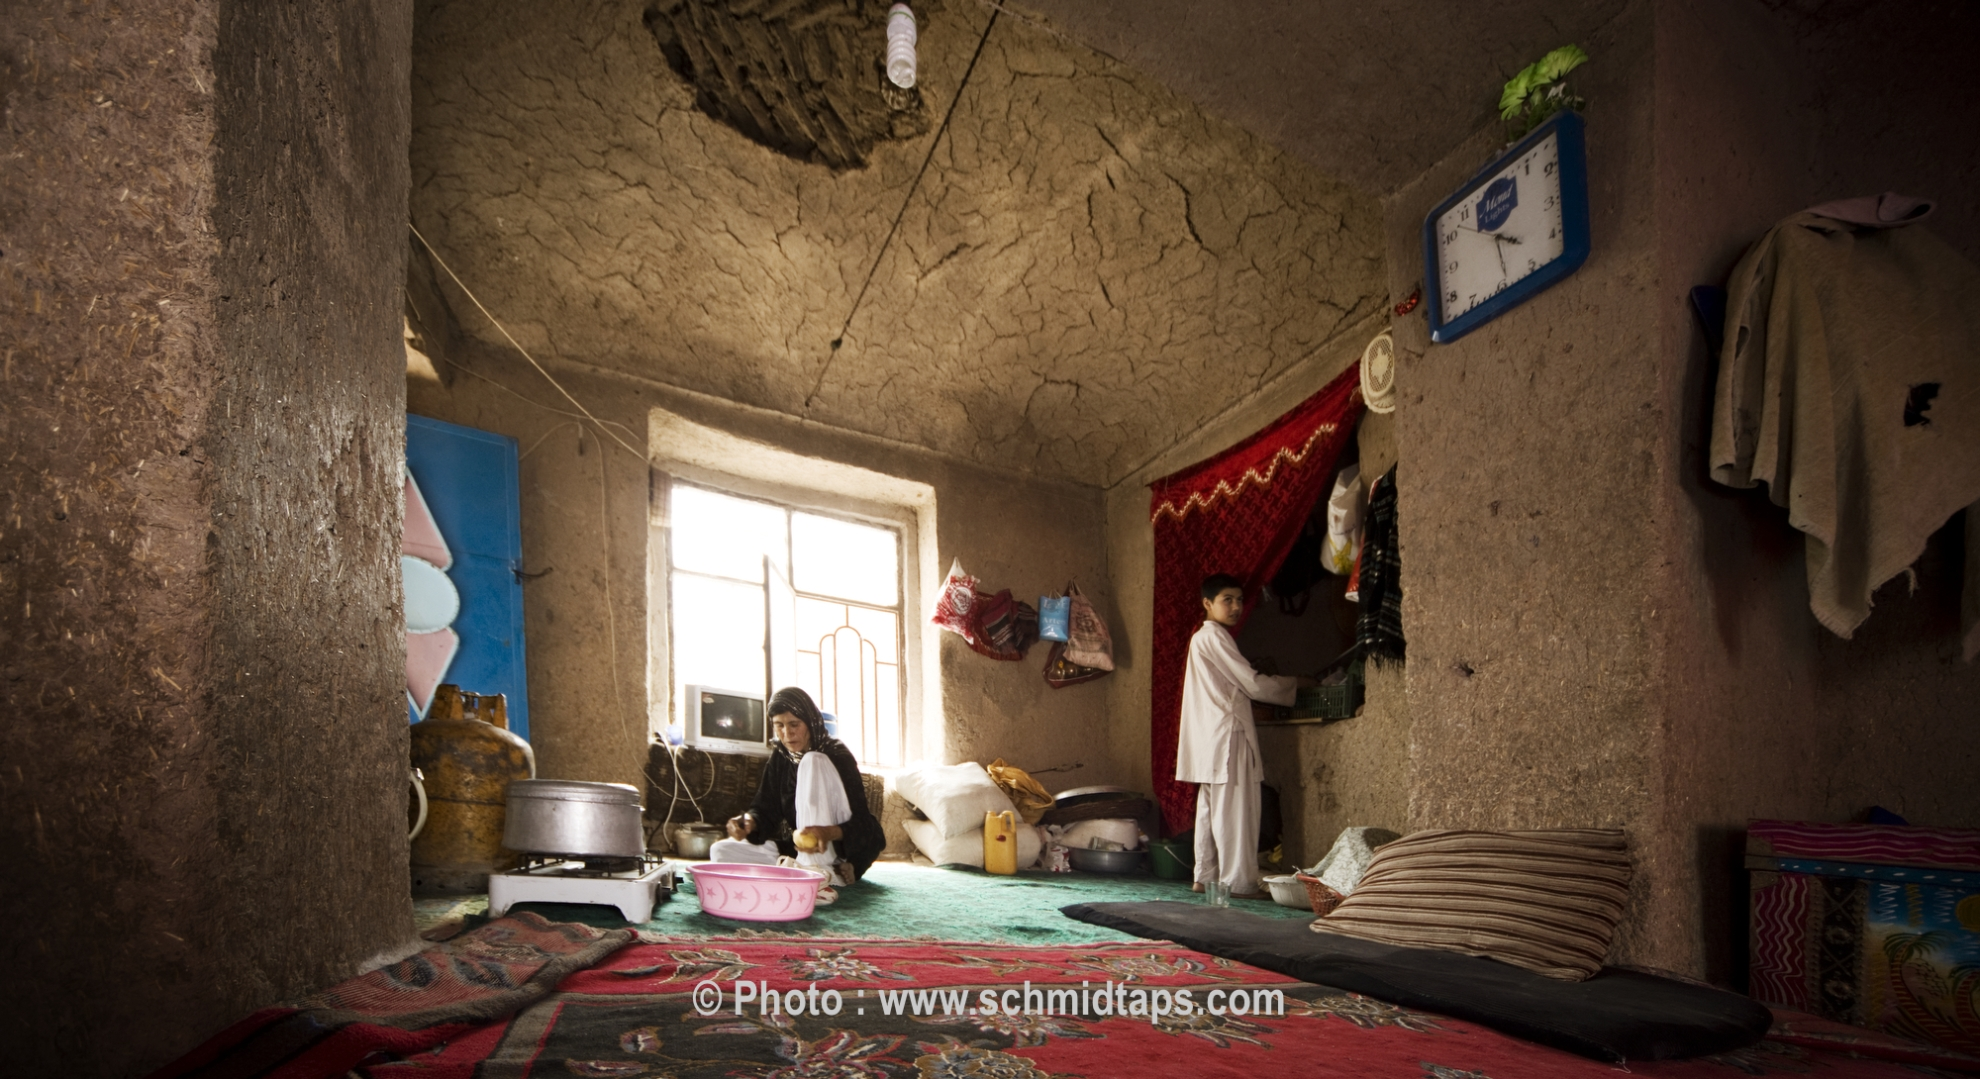 A typical Afghan home with mud walls. There is no furniture in the room – instead people sit on mattresses. Photo: Lars Schmidt, 2010-'13